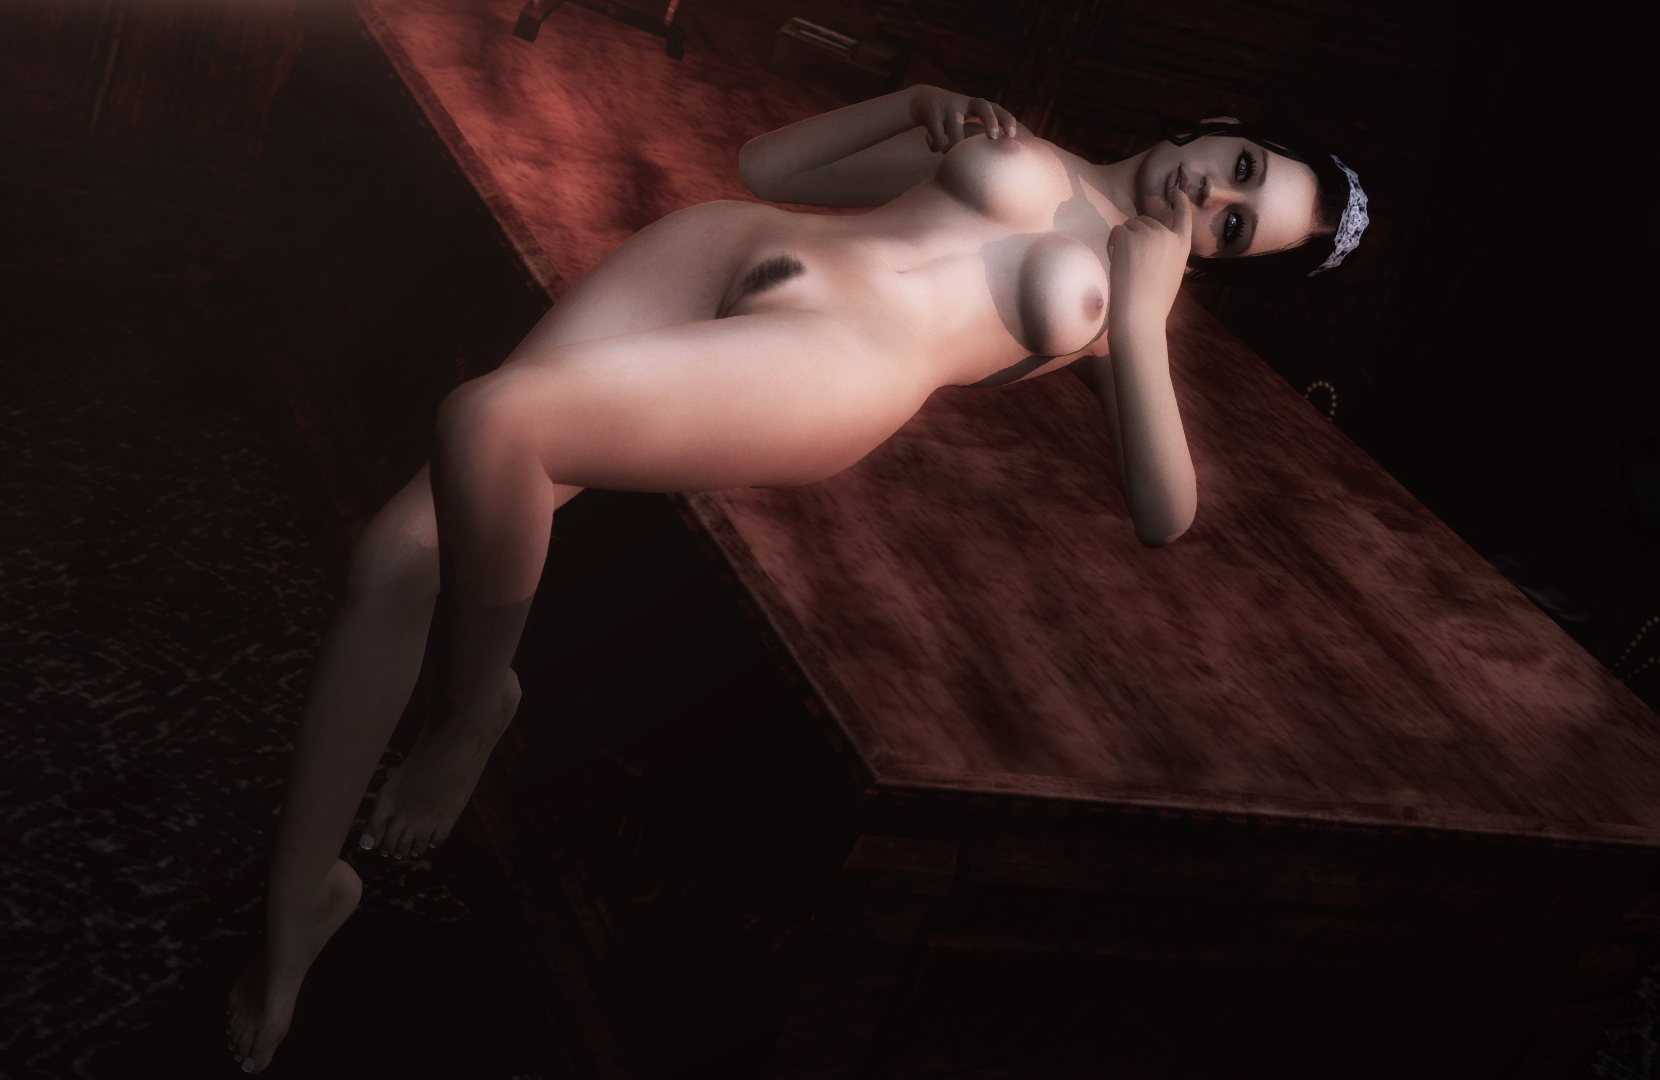 Duke nukem 3d nude patch forever sex photo